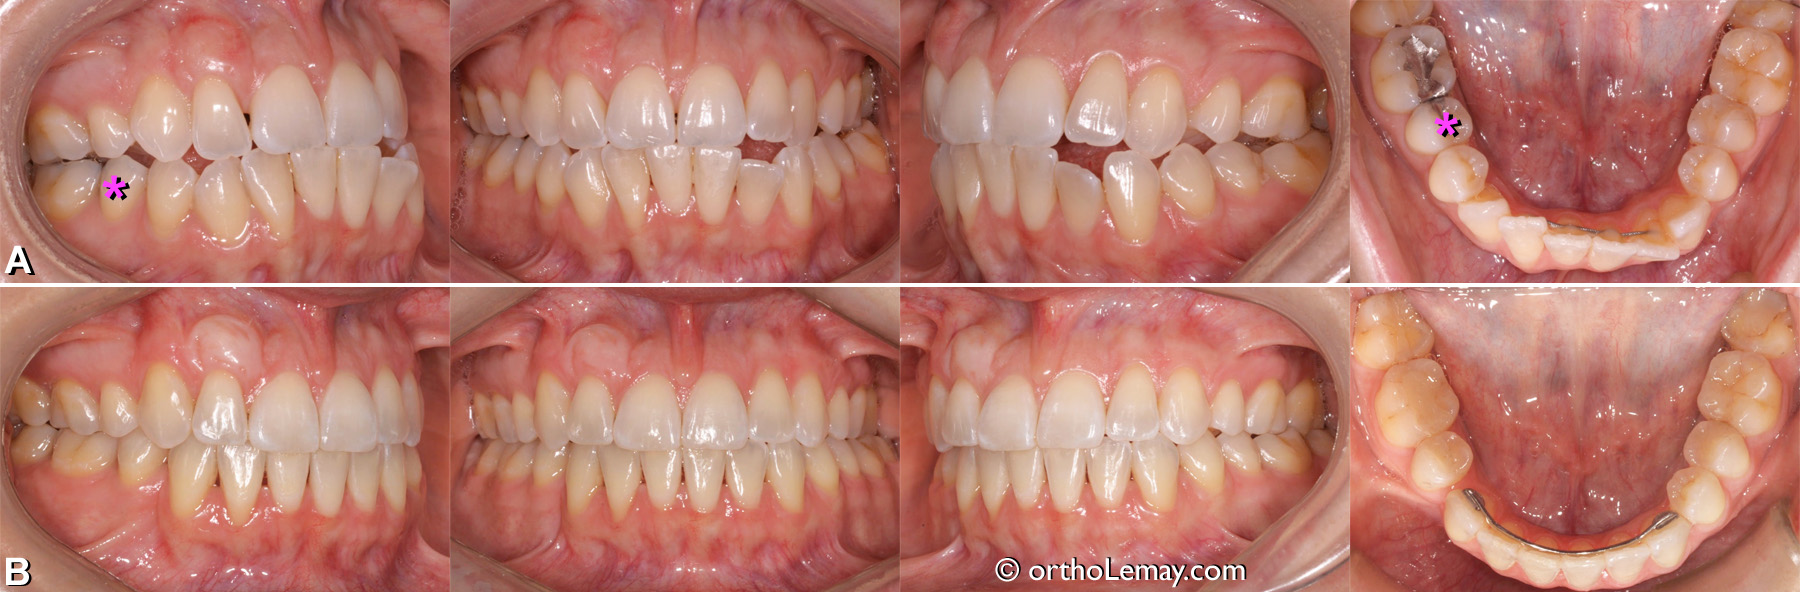 classe 3 malocclusion dentaire adulte orthodontie Sherbrooke AD41f 133084